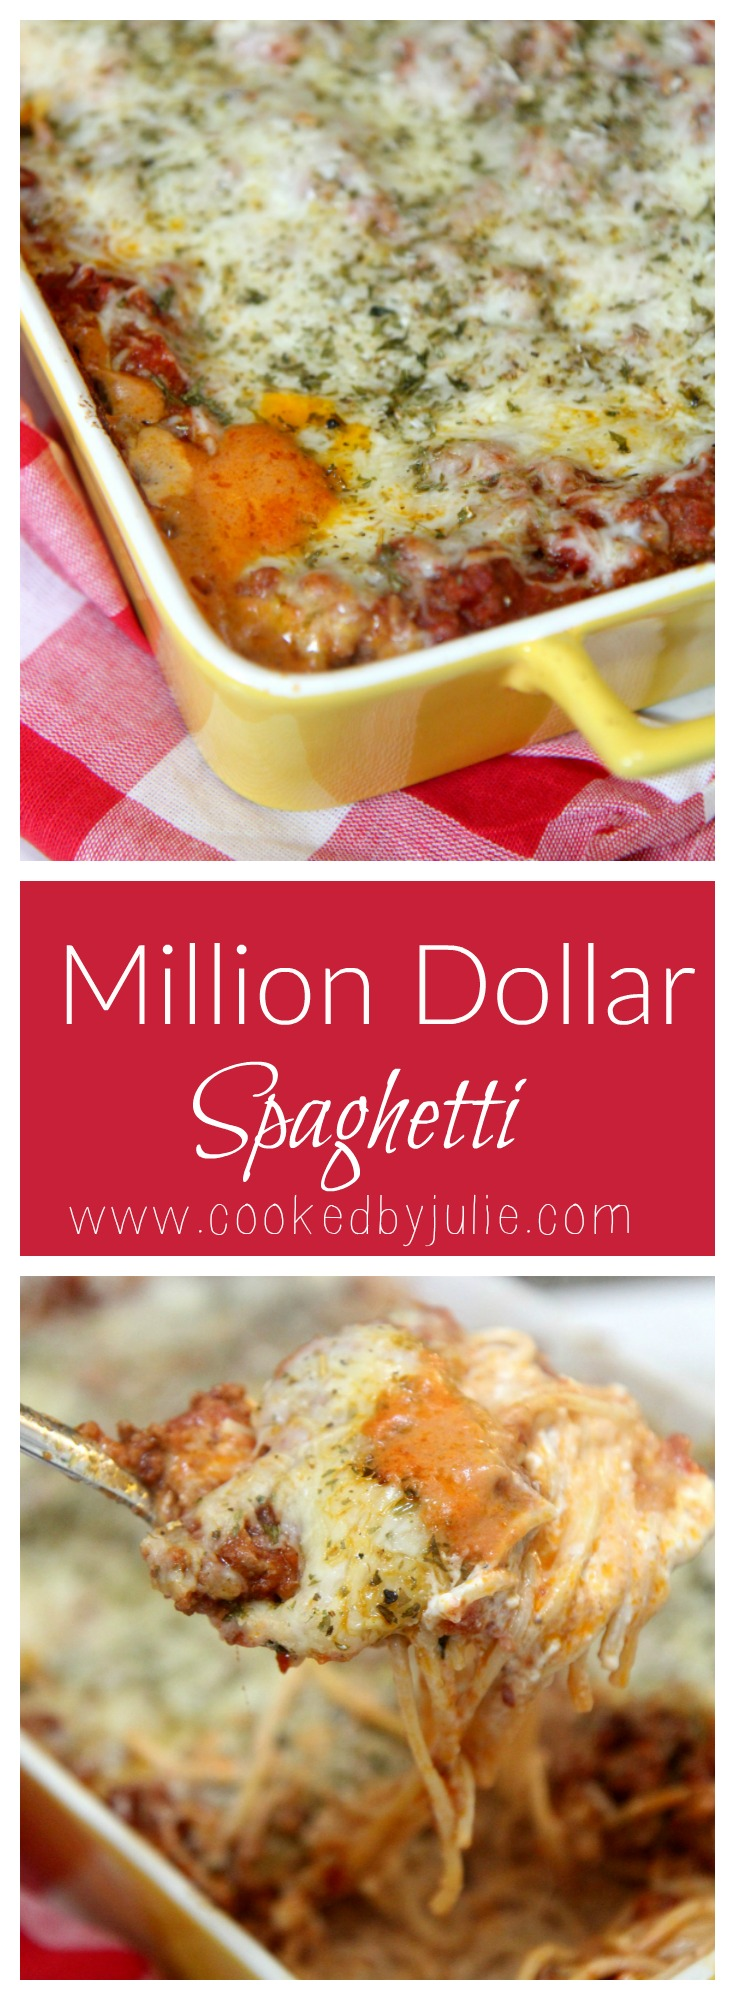 Learn how to make the best spaghetti ever at CookedByJulie.com